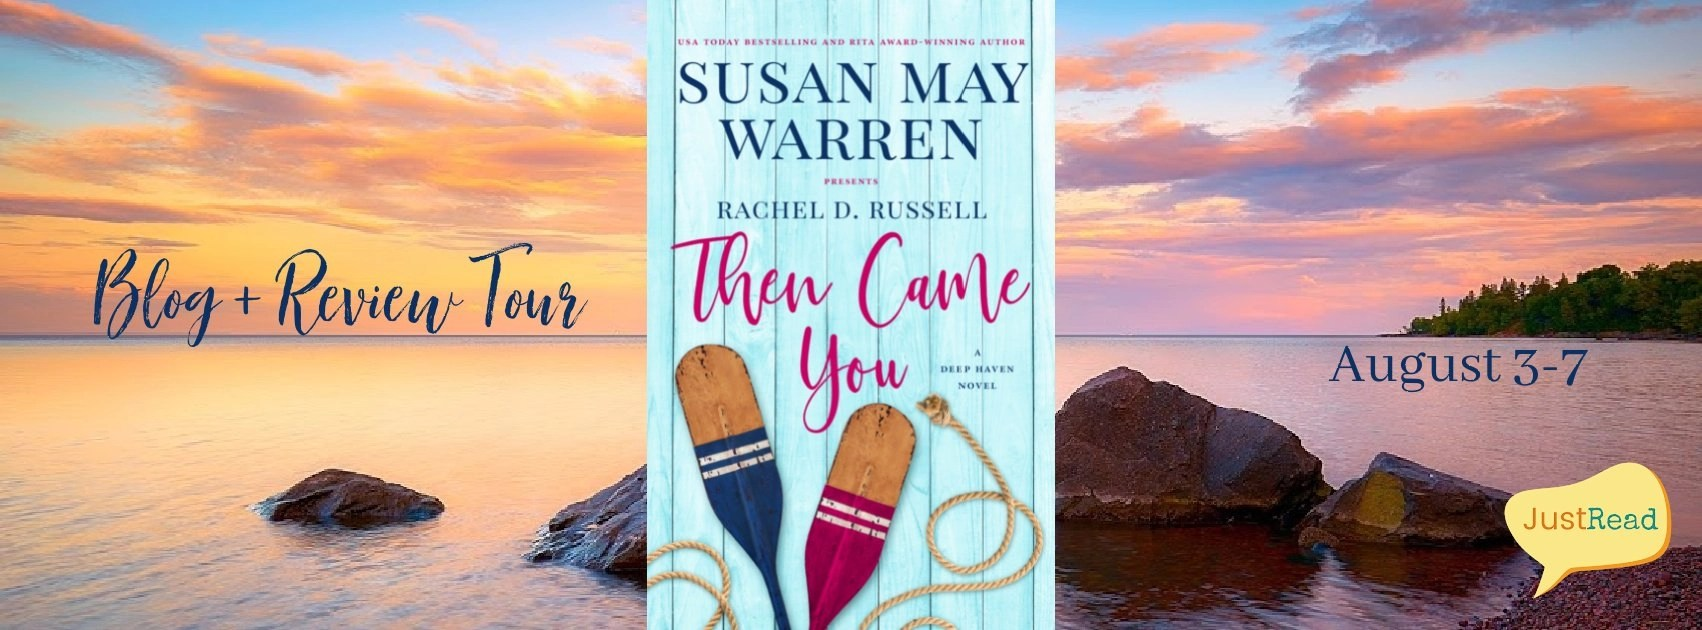 Welcome to the Then Came You Blog + Review Tour & Giveaway!